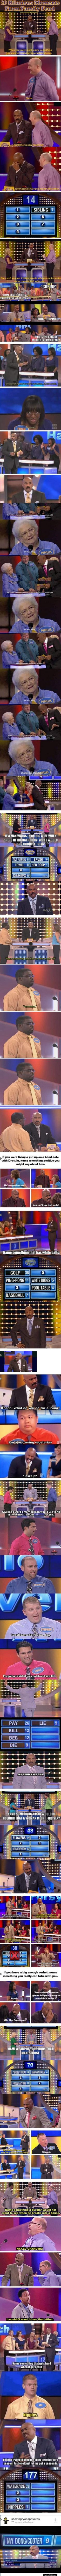 20 Hilarious Moments From Family Feud funny lol funny quotes humor omg funny pictures wtf fails funny images family feud